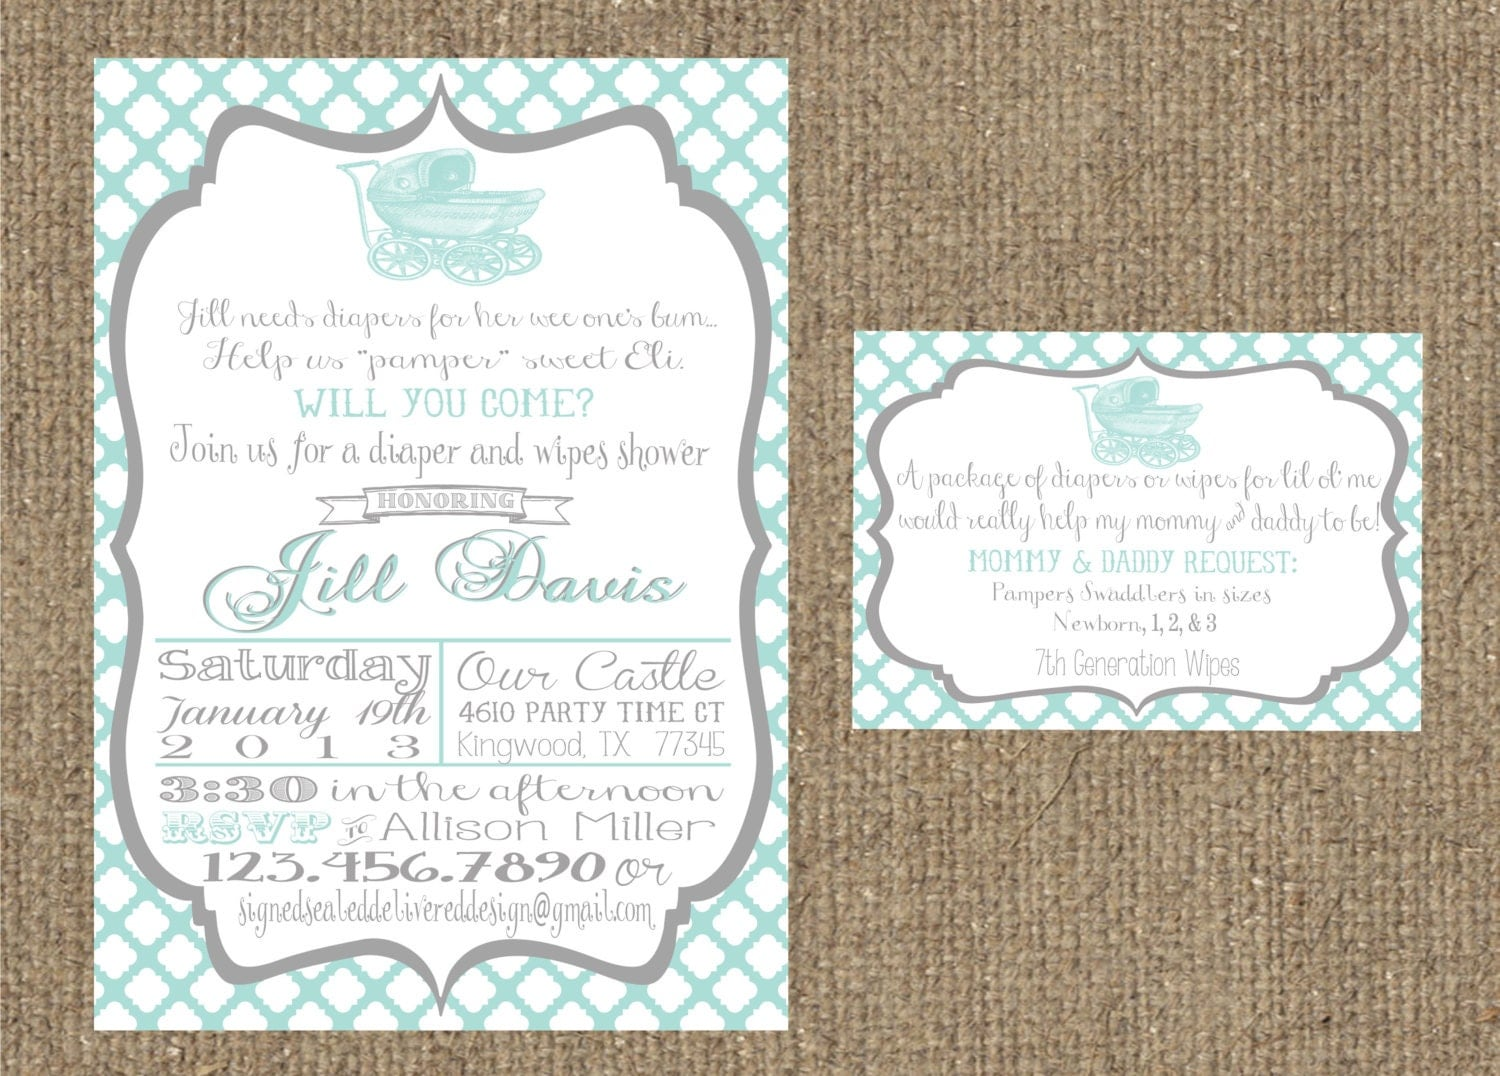 Target Wedding Registry Invitation Inserts